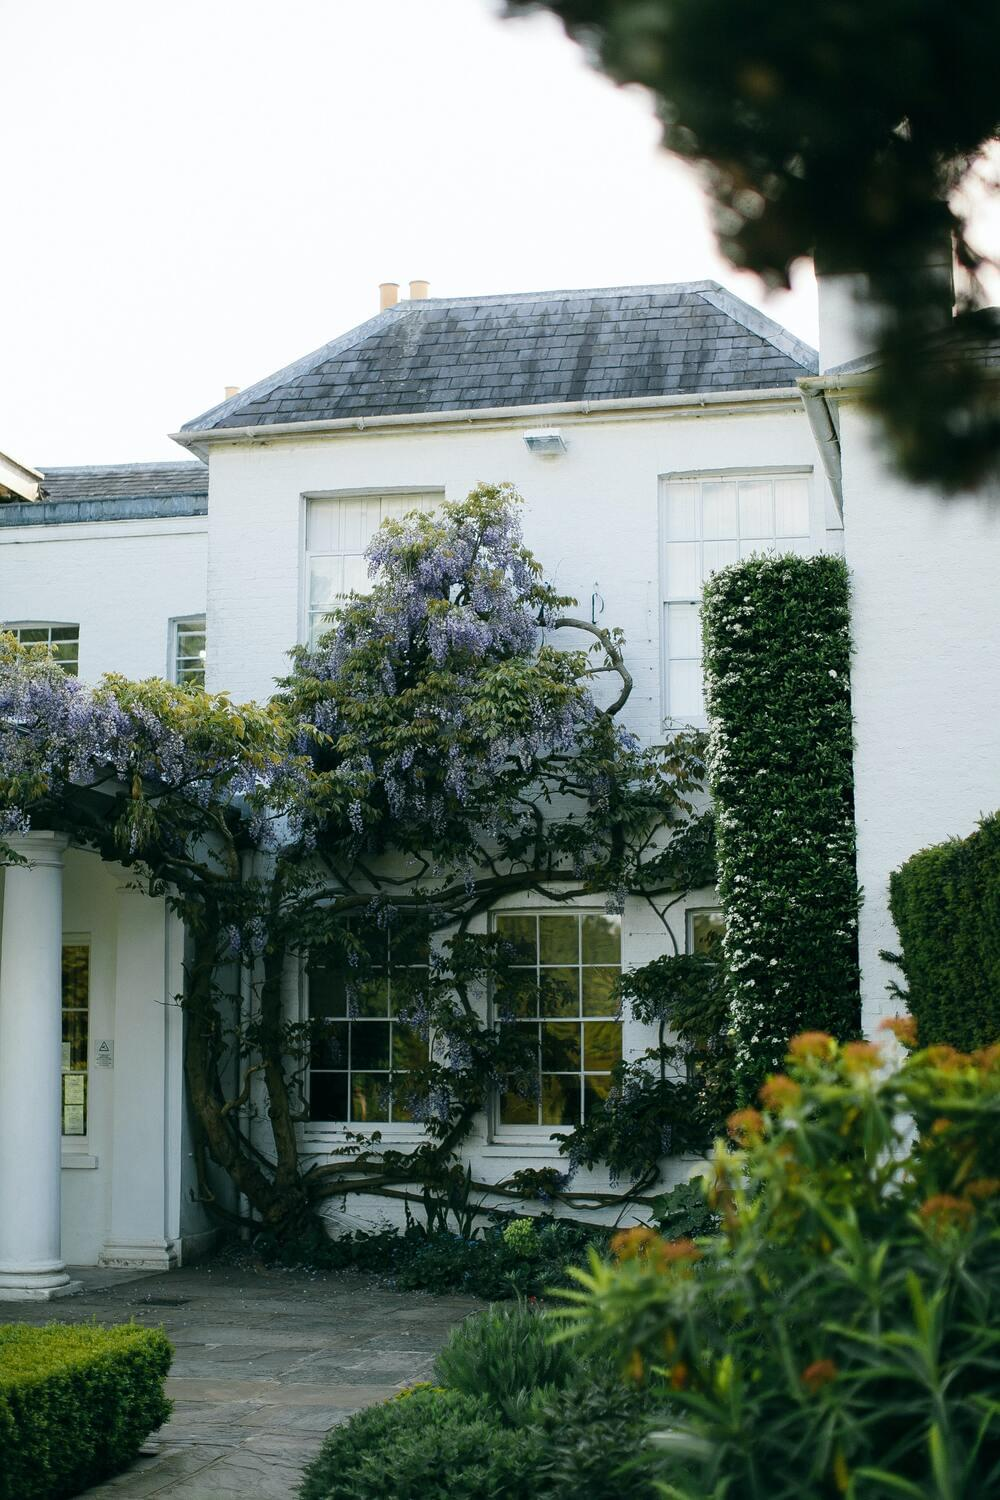 House with plants